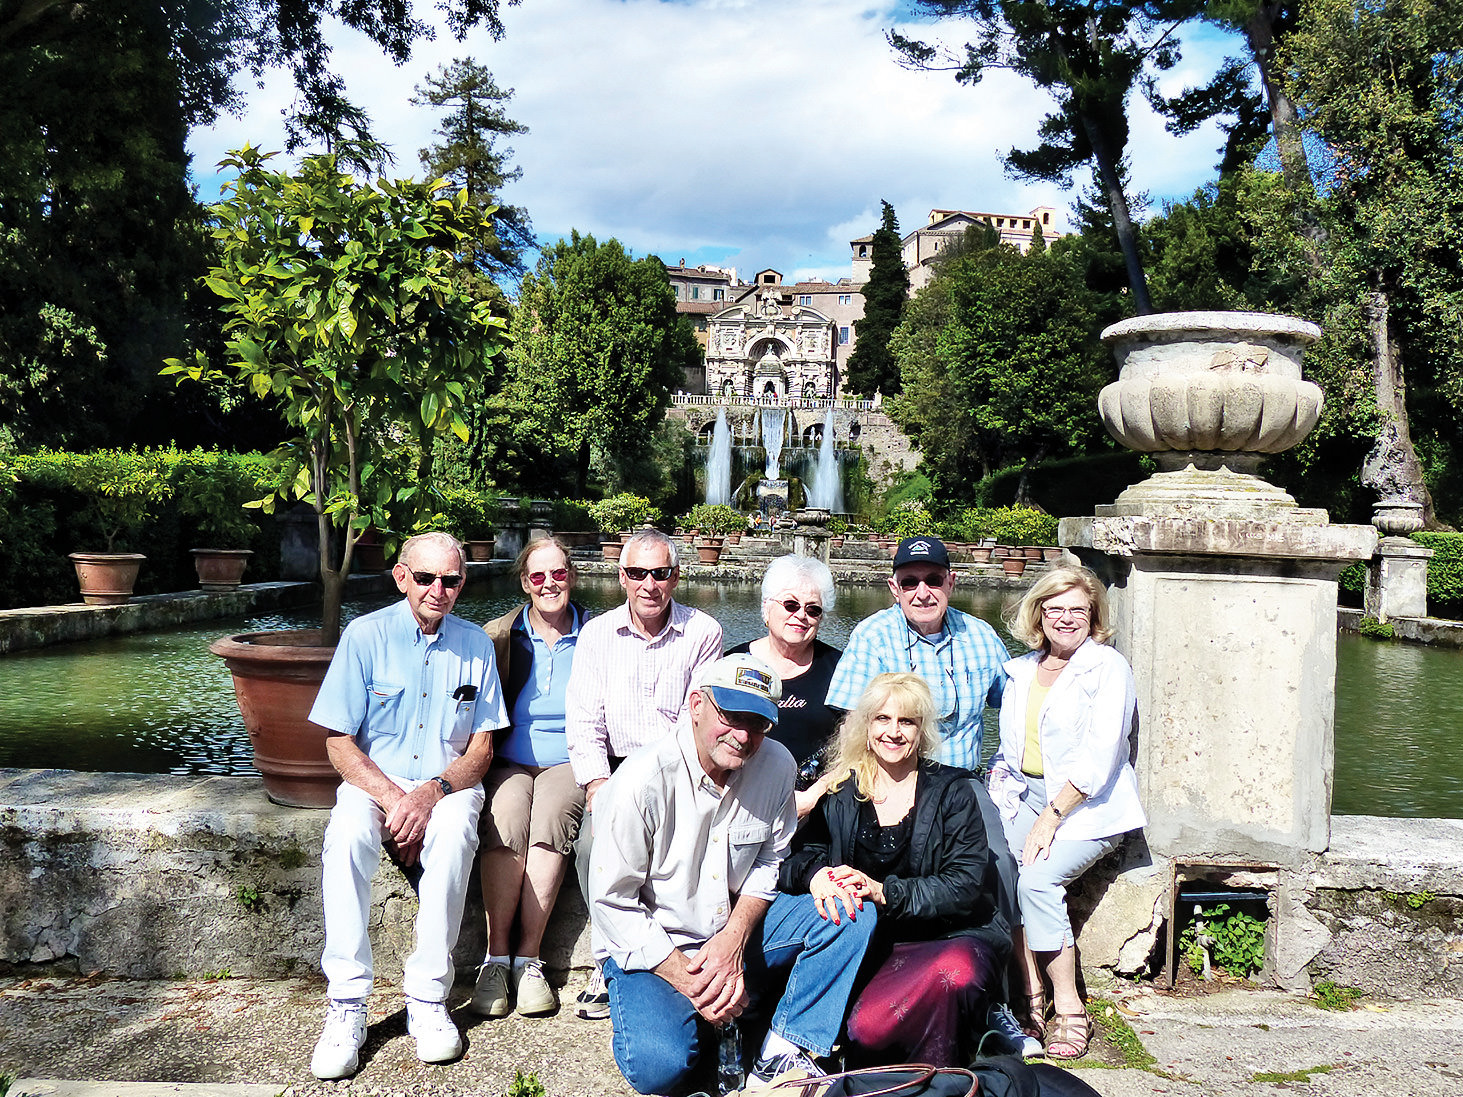 Reminiscing on travel to Rome in 2016: we will be back. Left to right: Ray Johnson, Pam Johnson, Nick Bogdanoff, Ilona Melnyk, Ray Rajamaki, and Jeanette Rajamaki; front: Mike Melnyk and Tami Bogdanoff